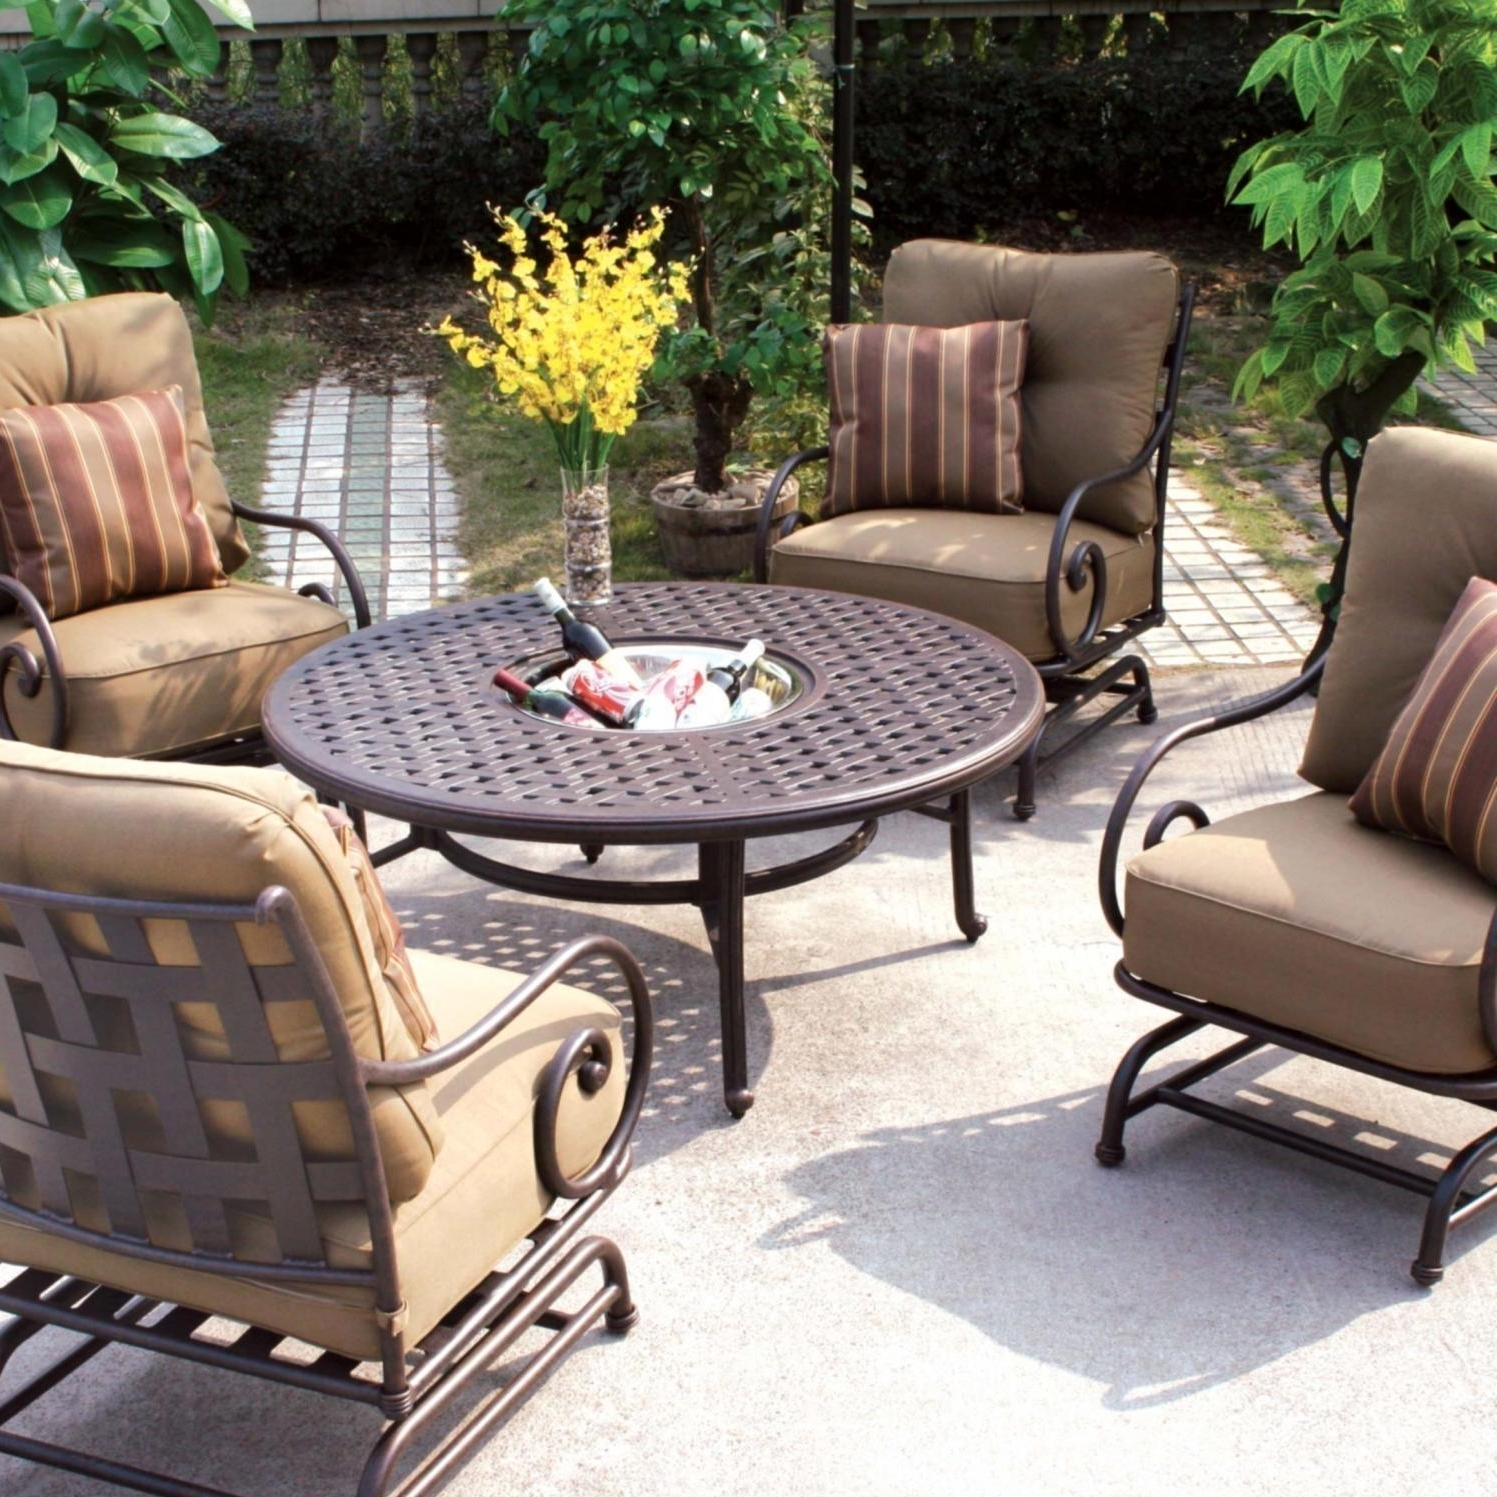 Most Popular Superb Outdoor Furniture Conversation Sets Patio Clearance Wood My With Regard To Wood Patio Furniture Conversation Sets (View 8 of 20)